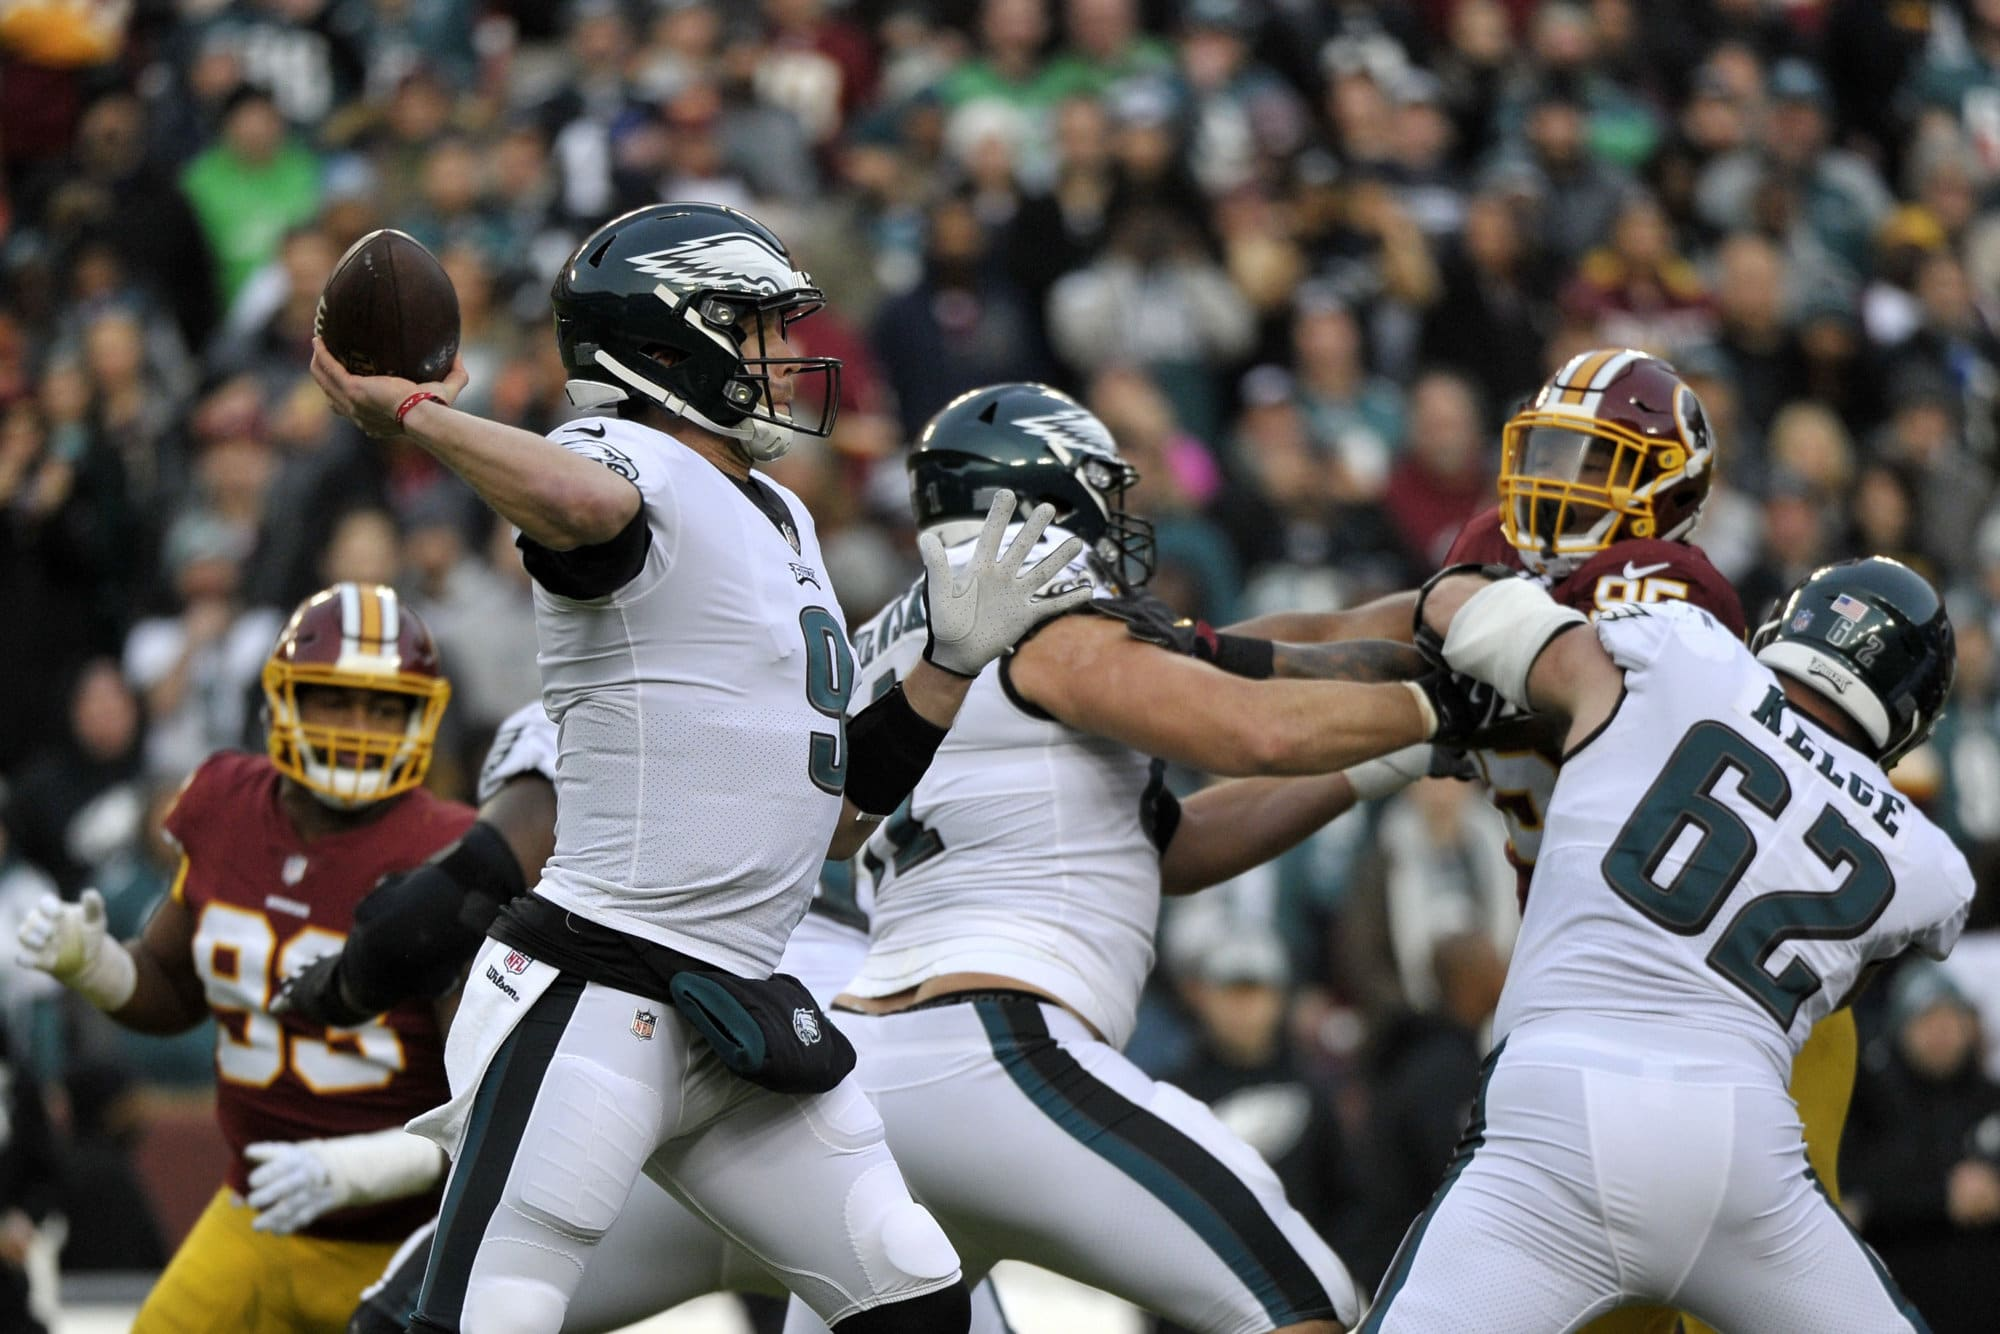 Philadelphia Eagles quarterback Nick Foles (9) passes during an NFL football game against the Washington Redskins, Sunday, Dec. 30, 2018, in Landover, Md. (AP Photo/Mark Tenally)